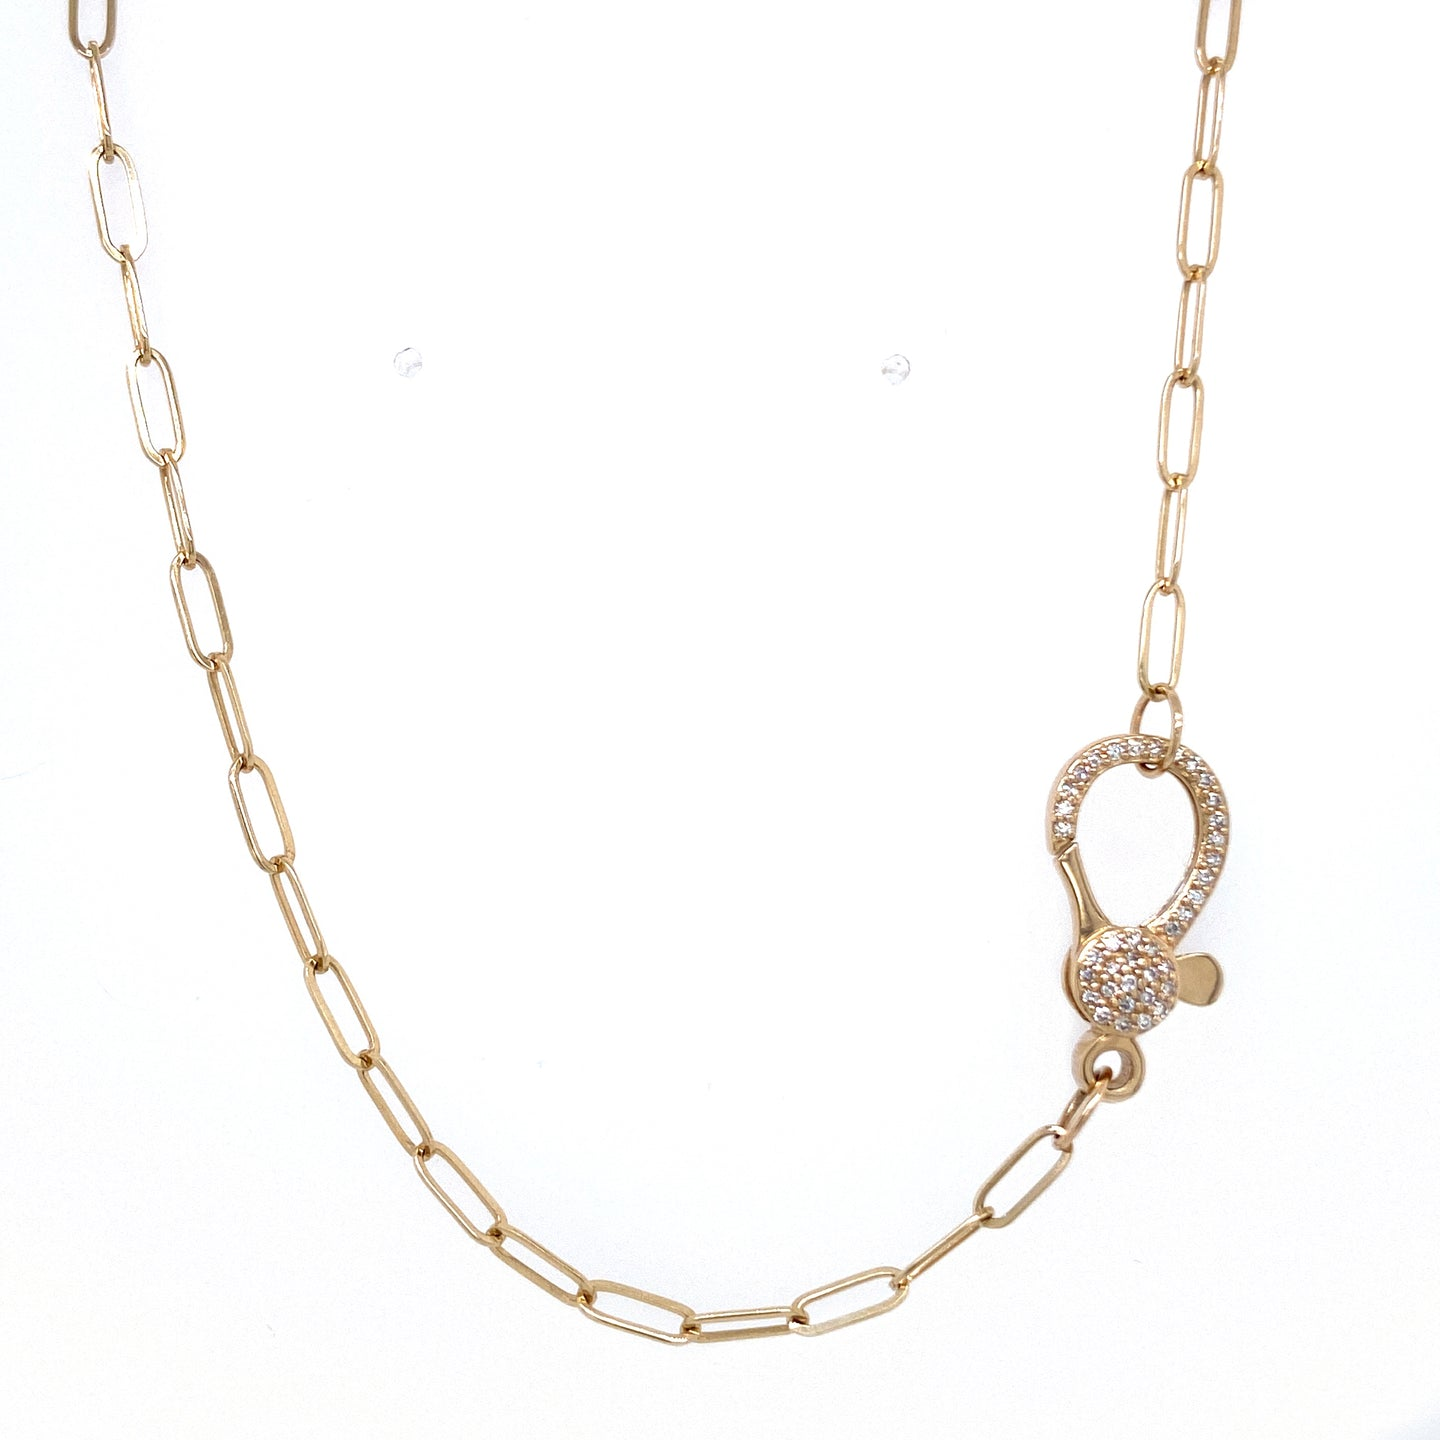 Paperclip Chain with Diamond Clasp